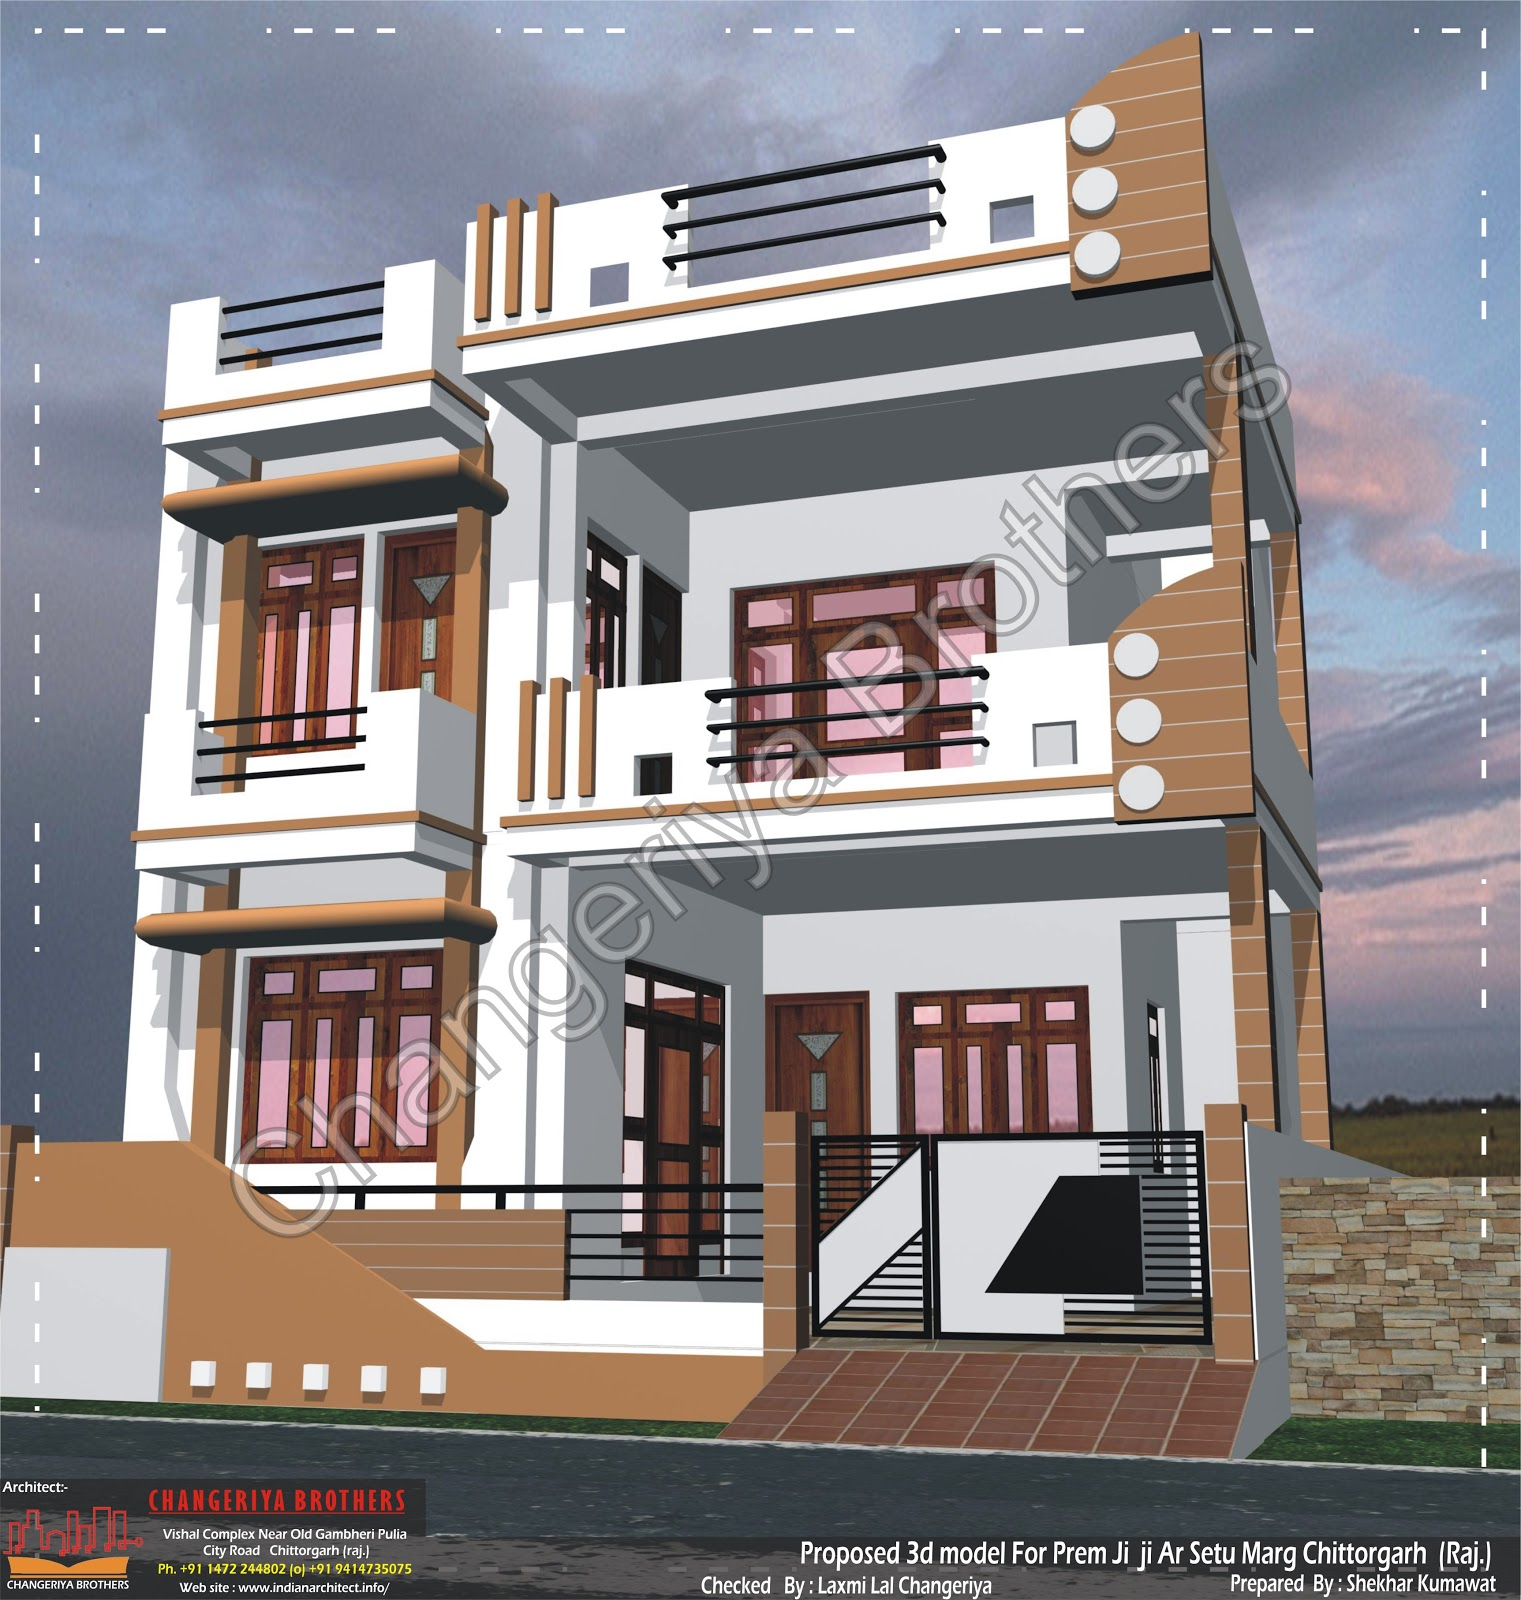 Mr prem ji at chittorgarh 30x60 3d model and project work Naksha for house construction